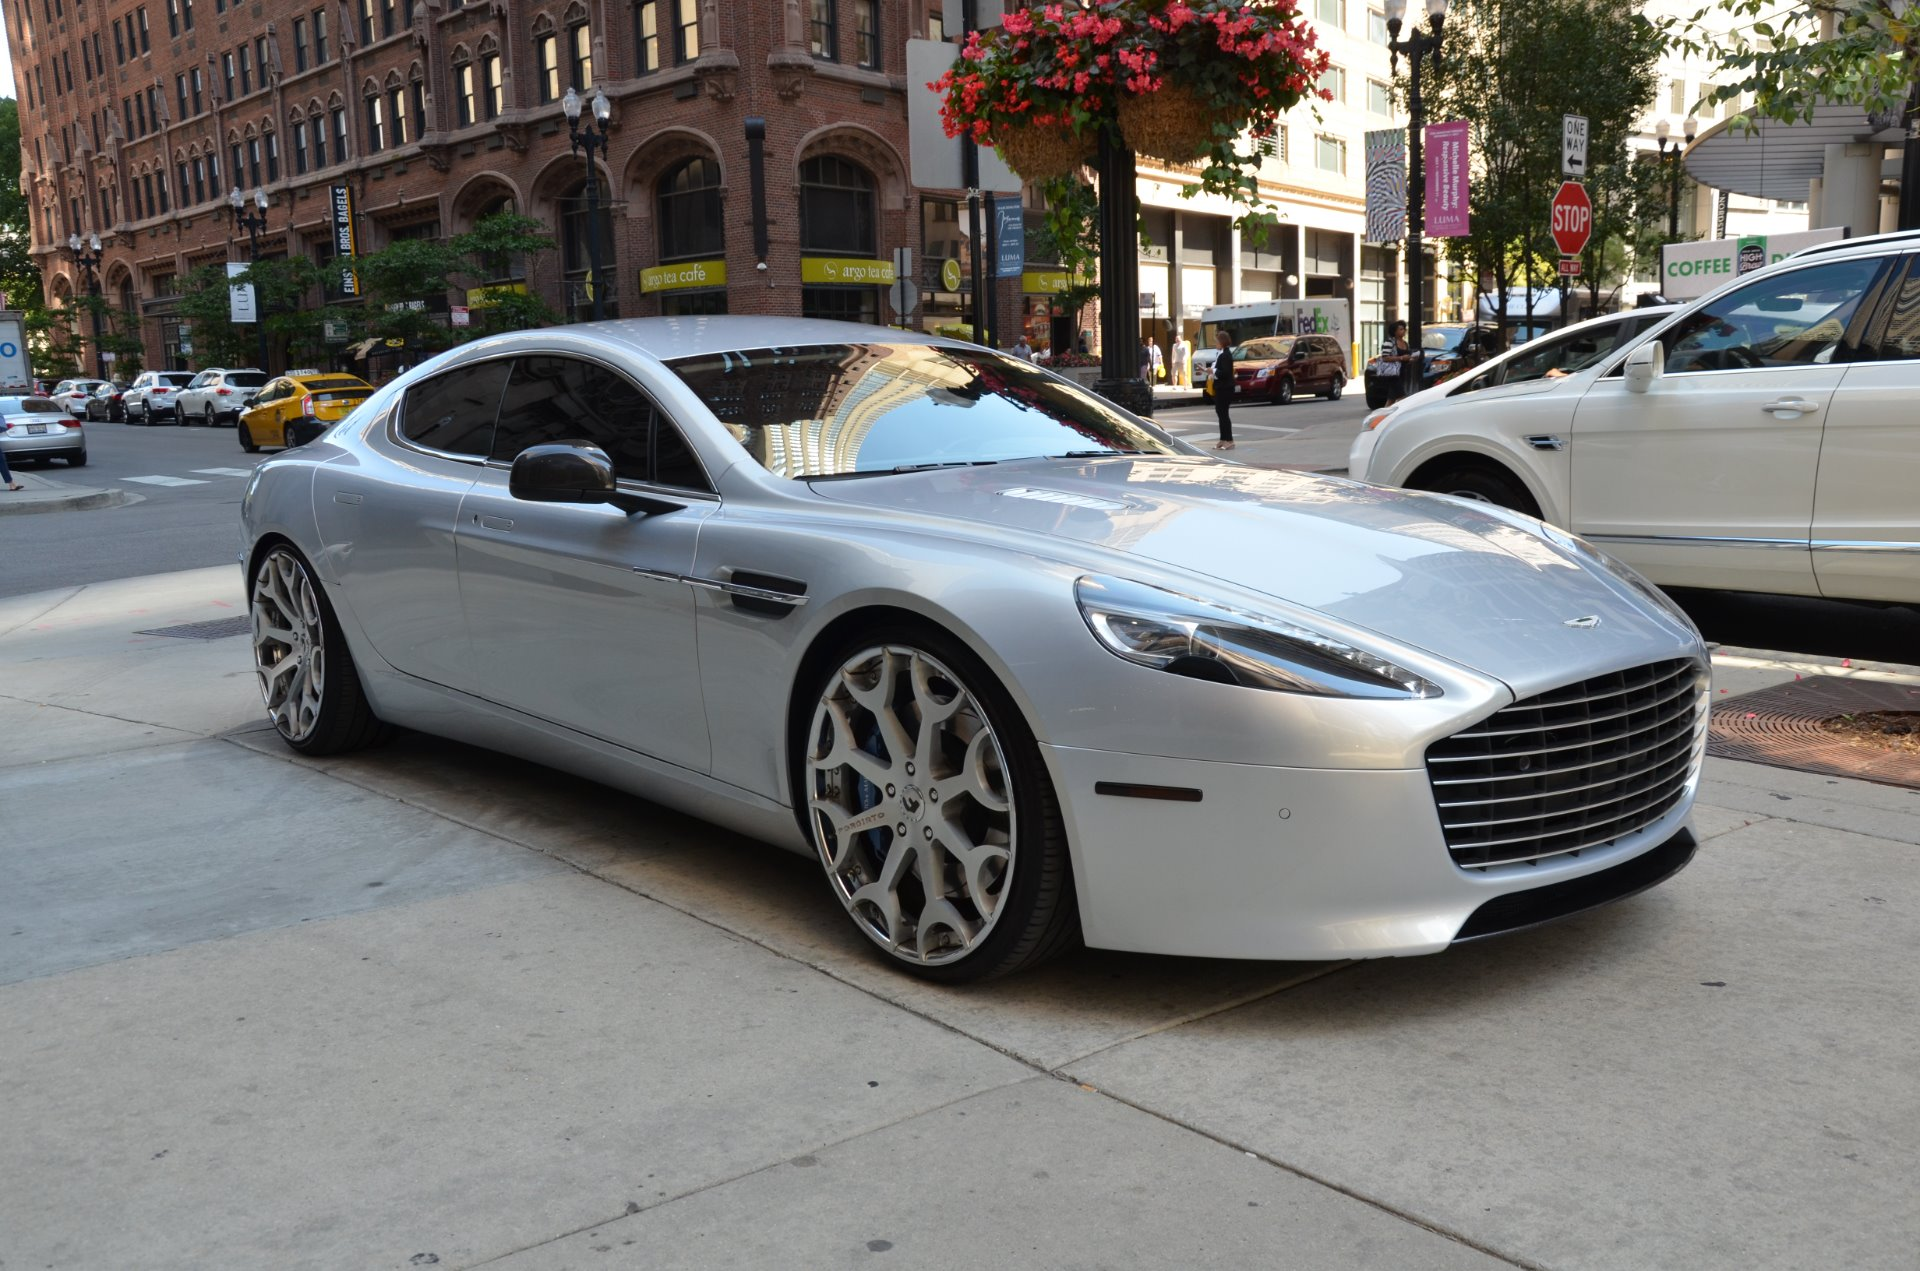 2014 Aston Martin Rapide S Stock # B954B For Sale Near